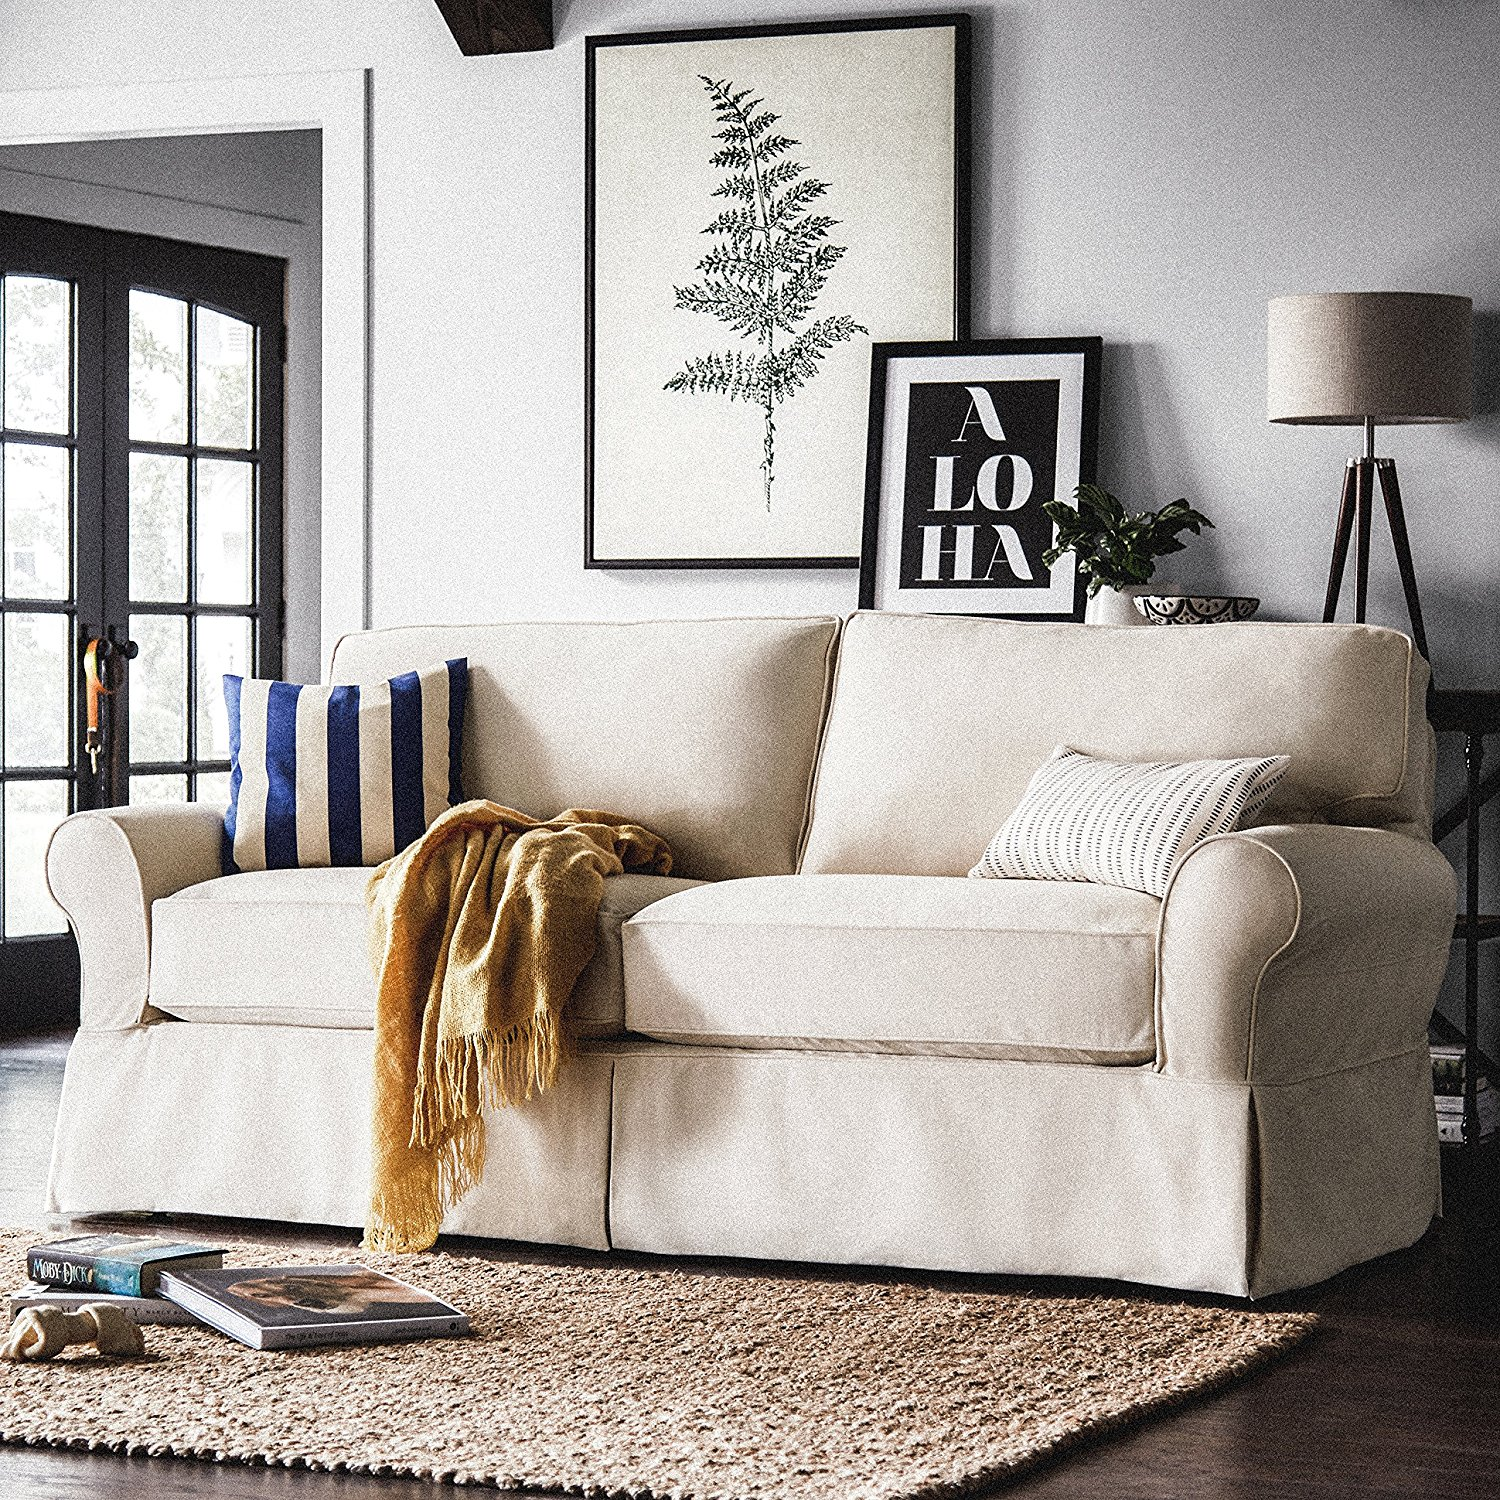 Amazon\'s New Furniture Line Will Give Your Home Joanna Gaines ...